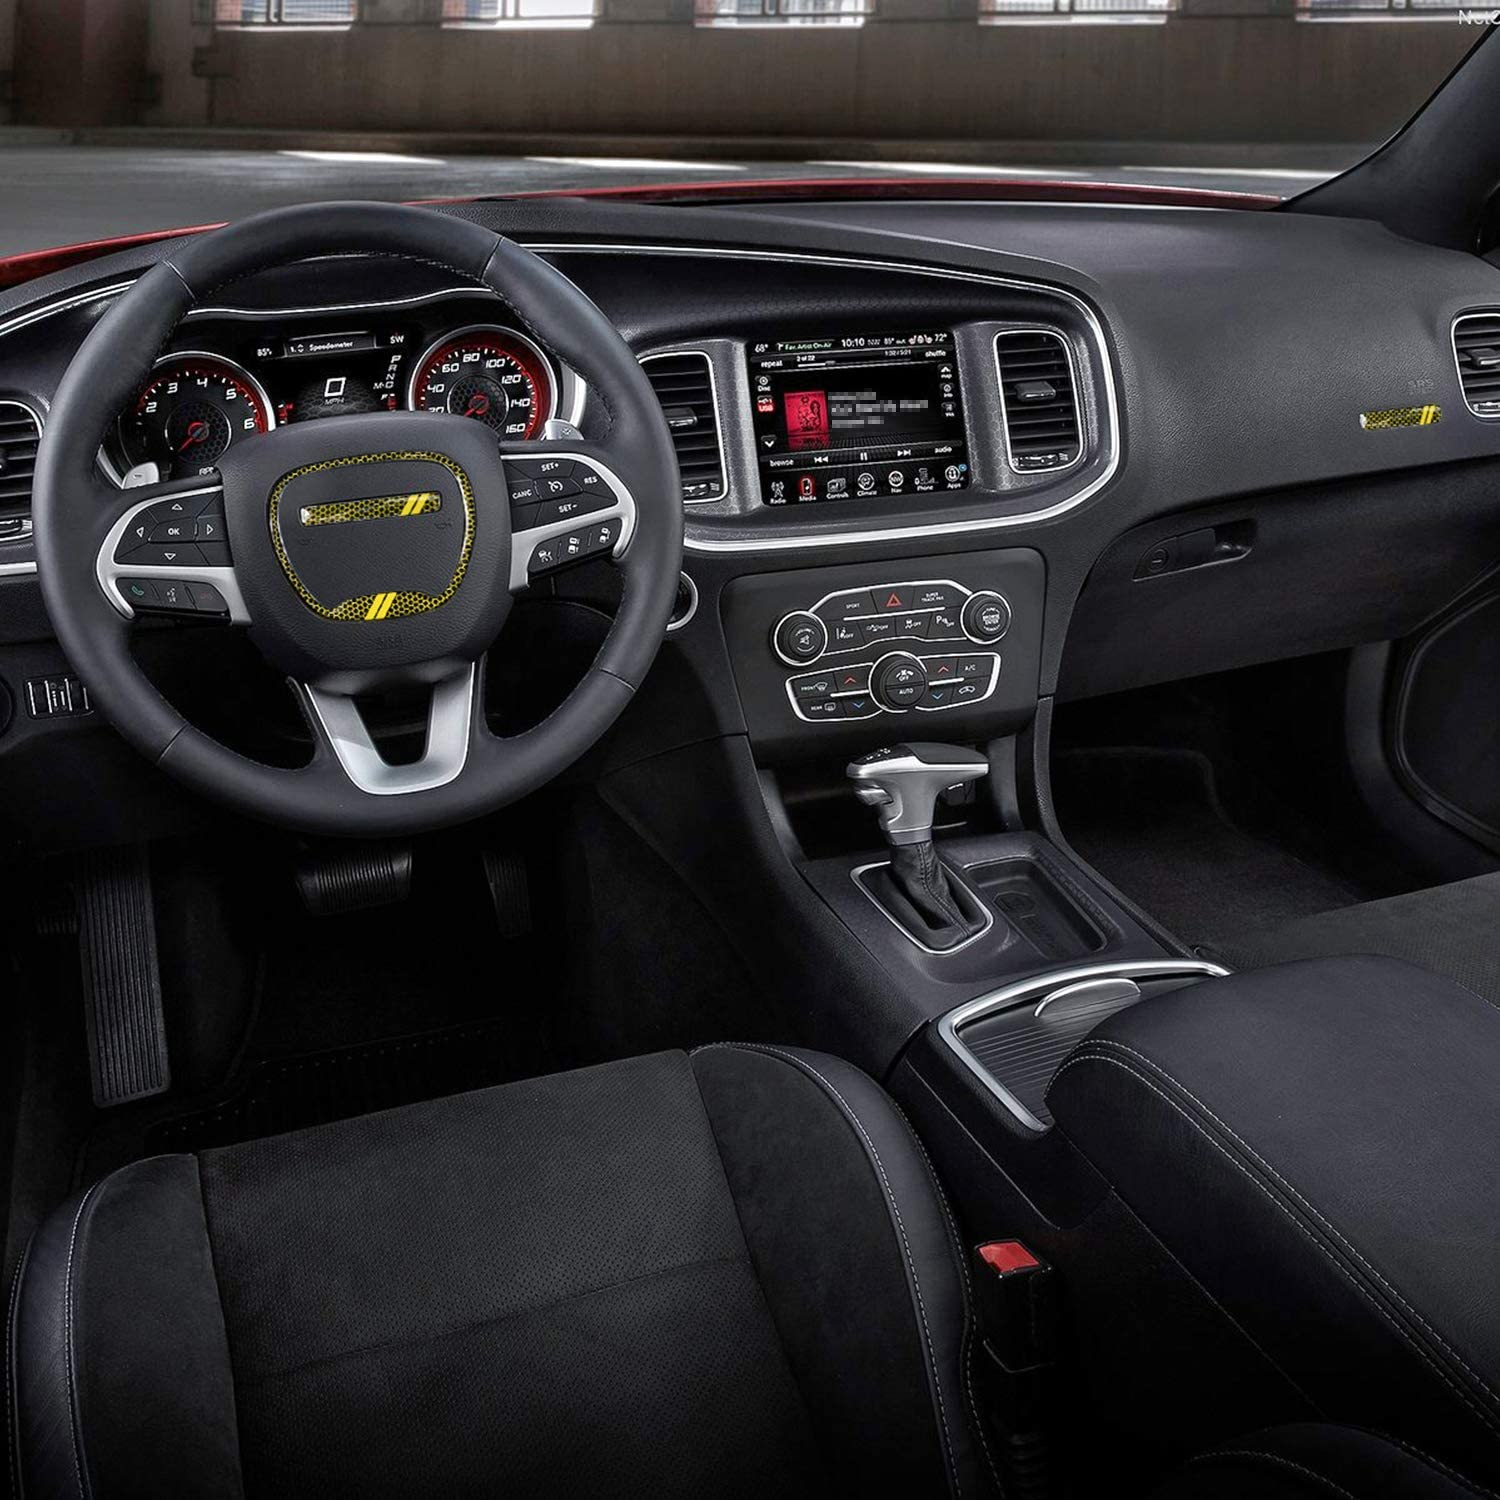 Yellow Not Fit SRT Version Steering Wheel Emblem Kit Trim Cover for Dodge Challenger Charger Durango RT /& Scat Pack 2015~2020 Interior Decoration Accessories